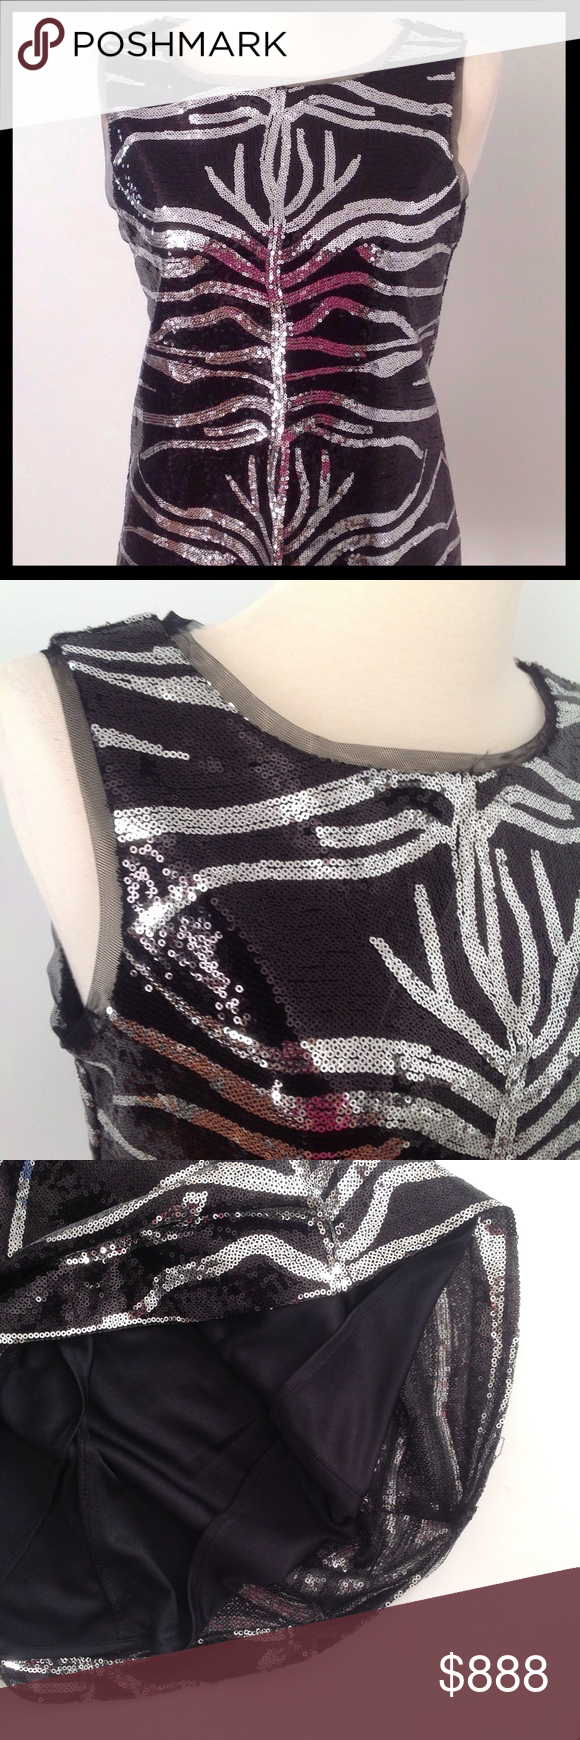 2891045f5276 DRESS BARN Collection Black and Silver Sequin Top   Sequin top ...